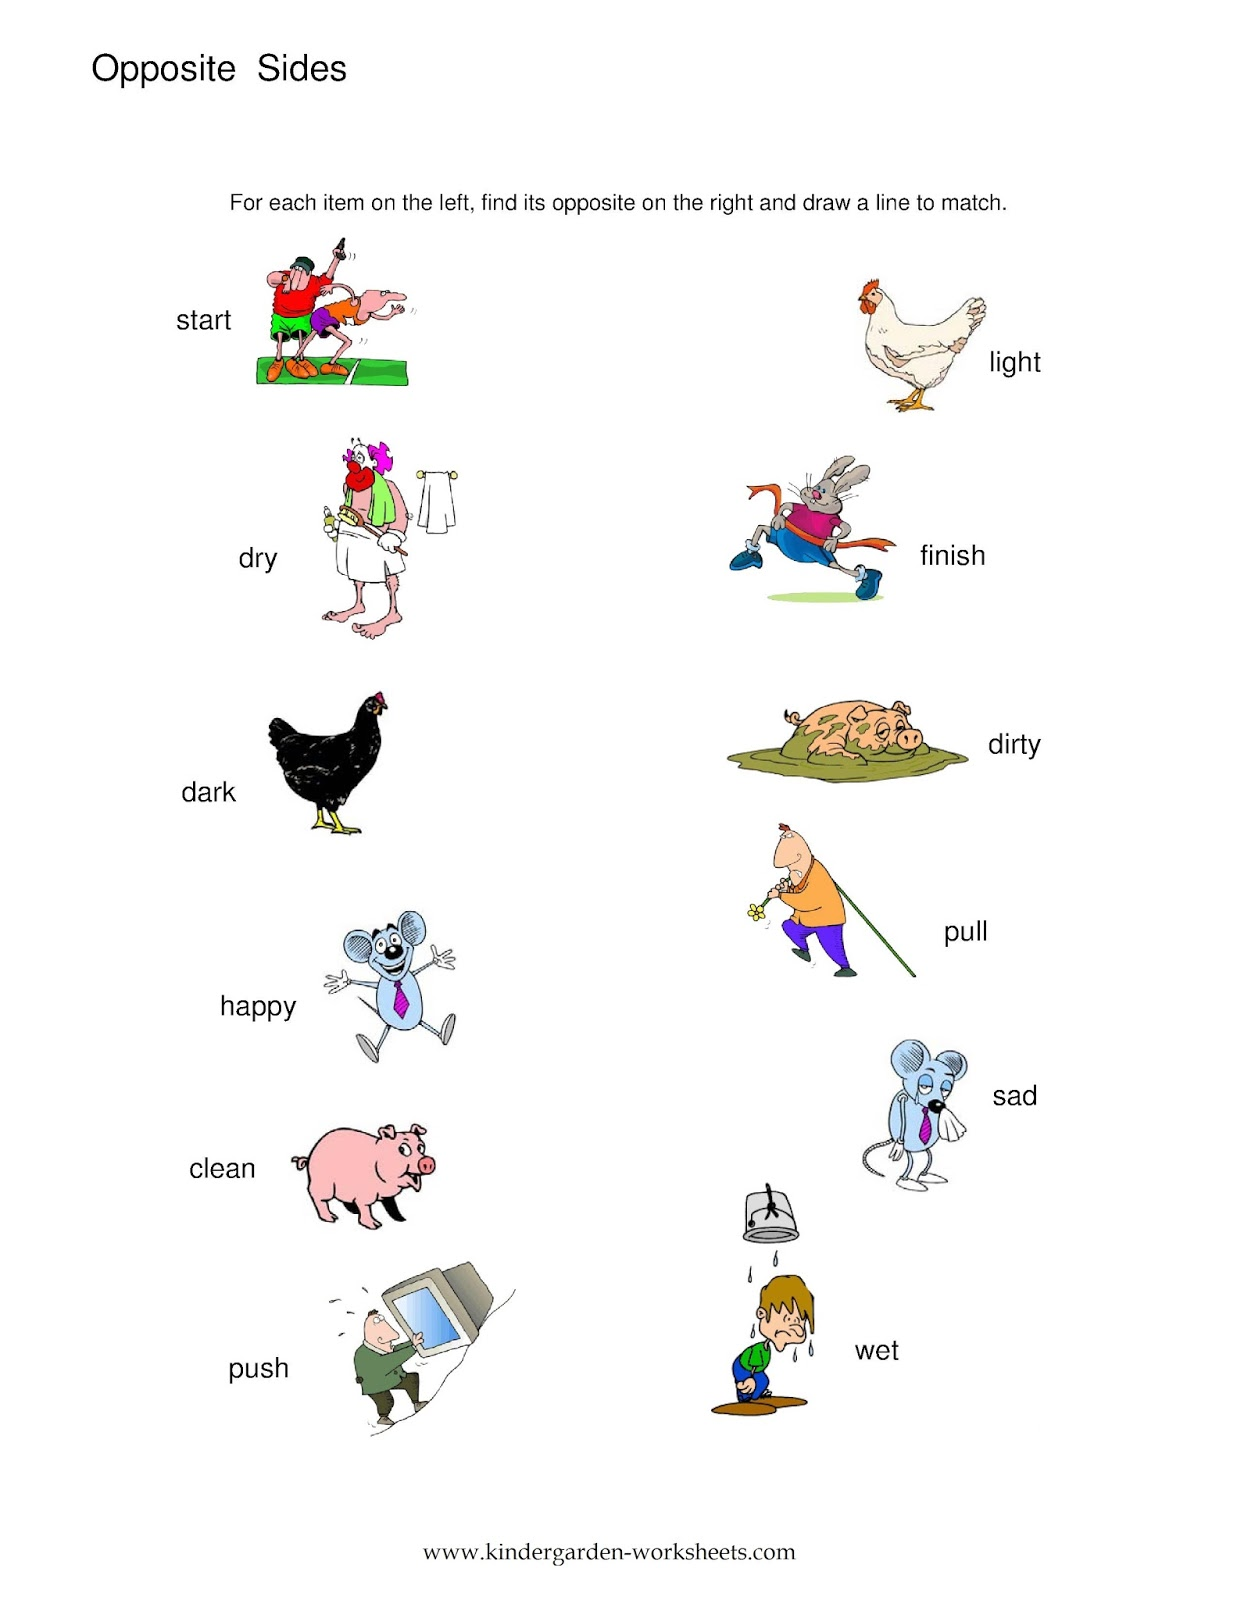 Worksheet Kindergarten Antonyms Wosenly Free Worksheet – Kindergarten Opposites Worksheet